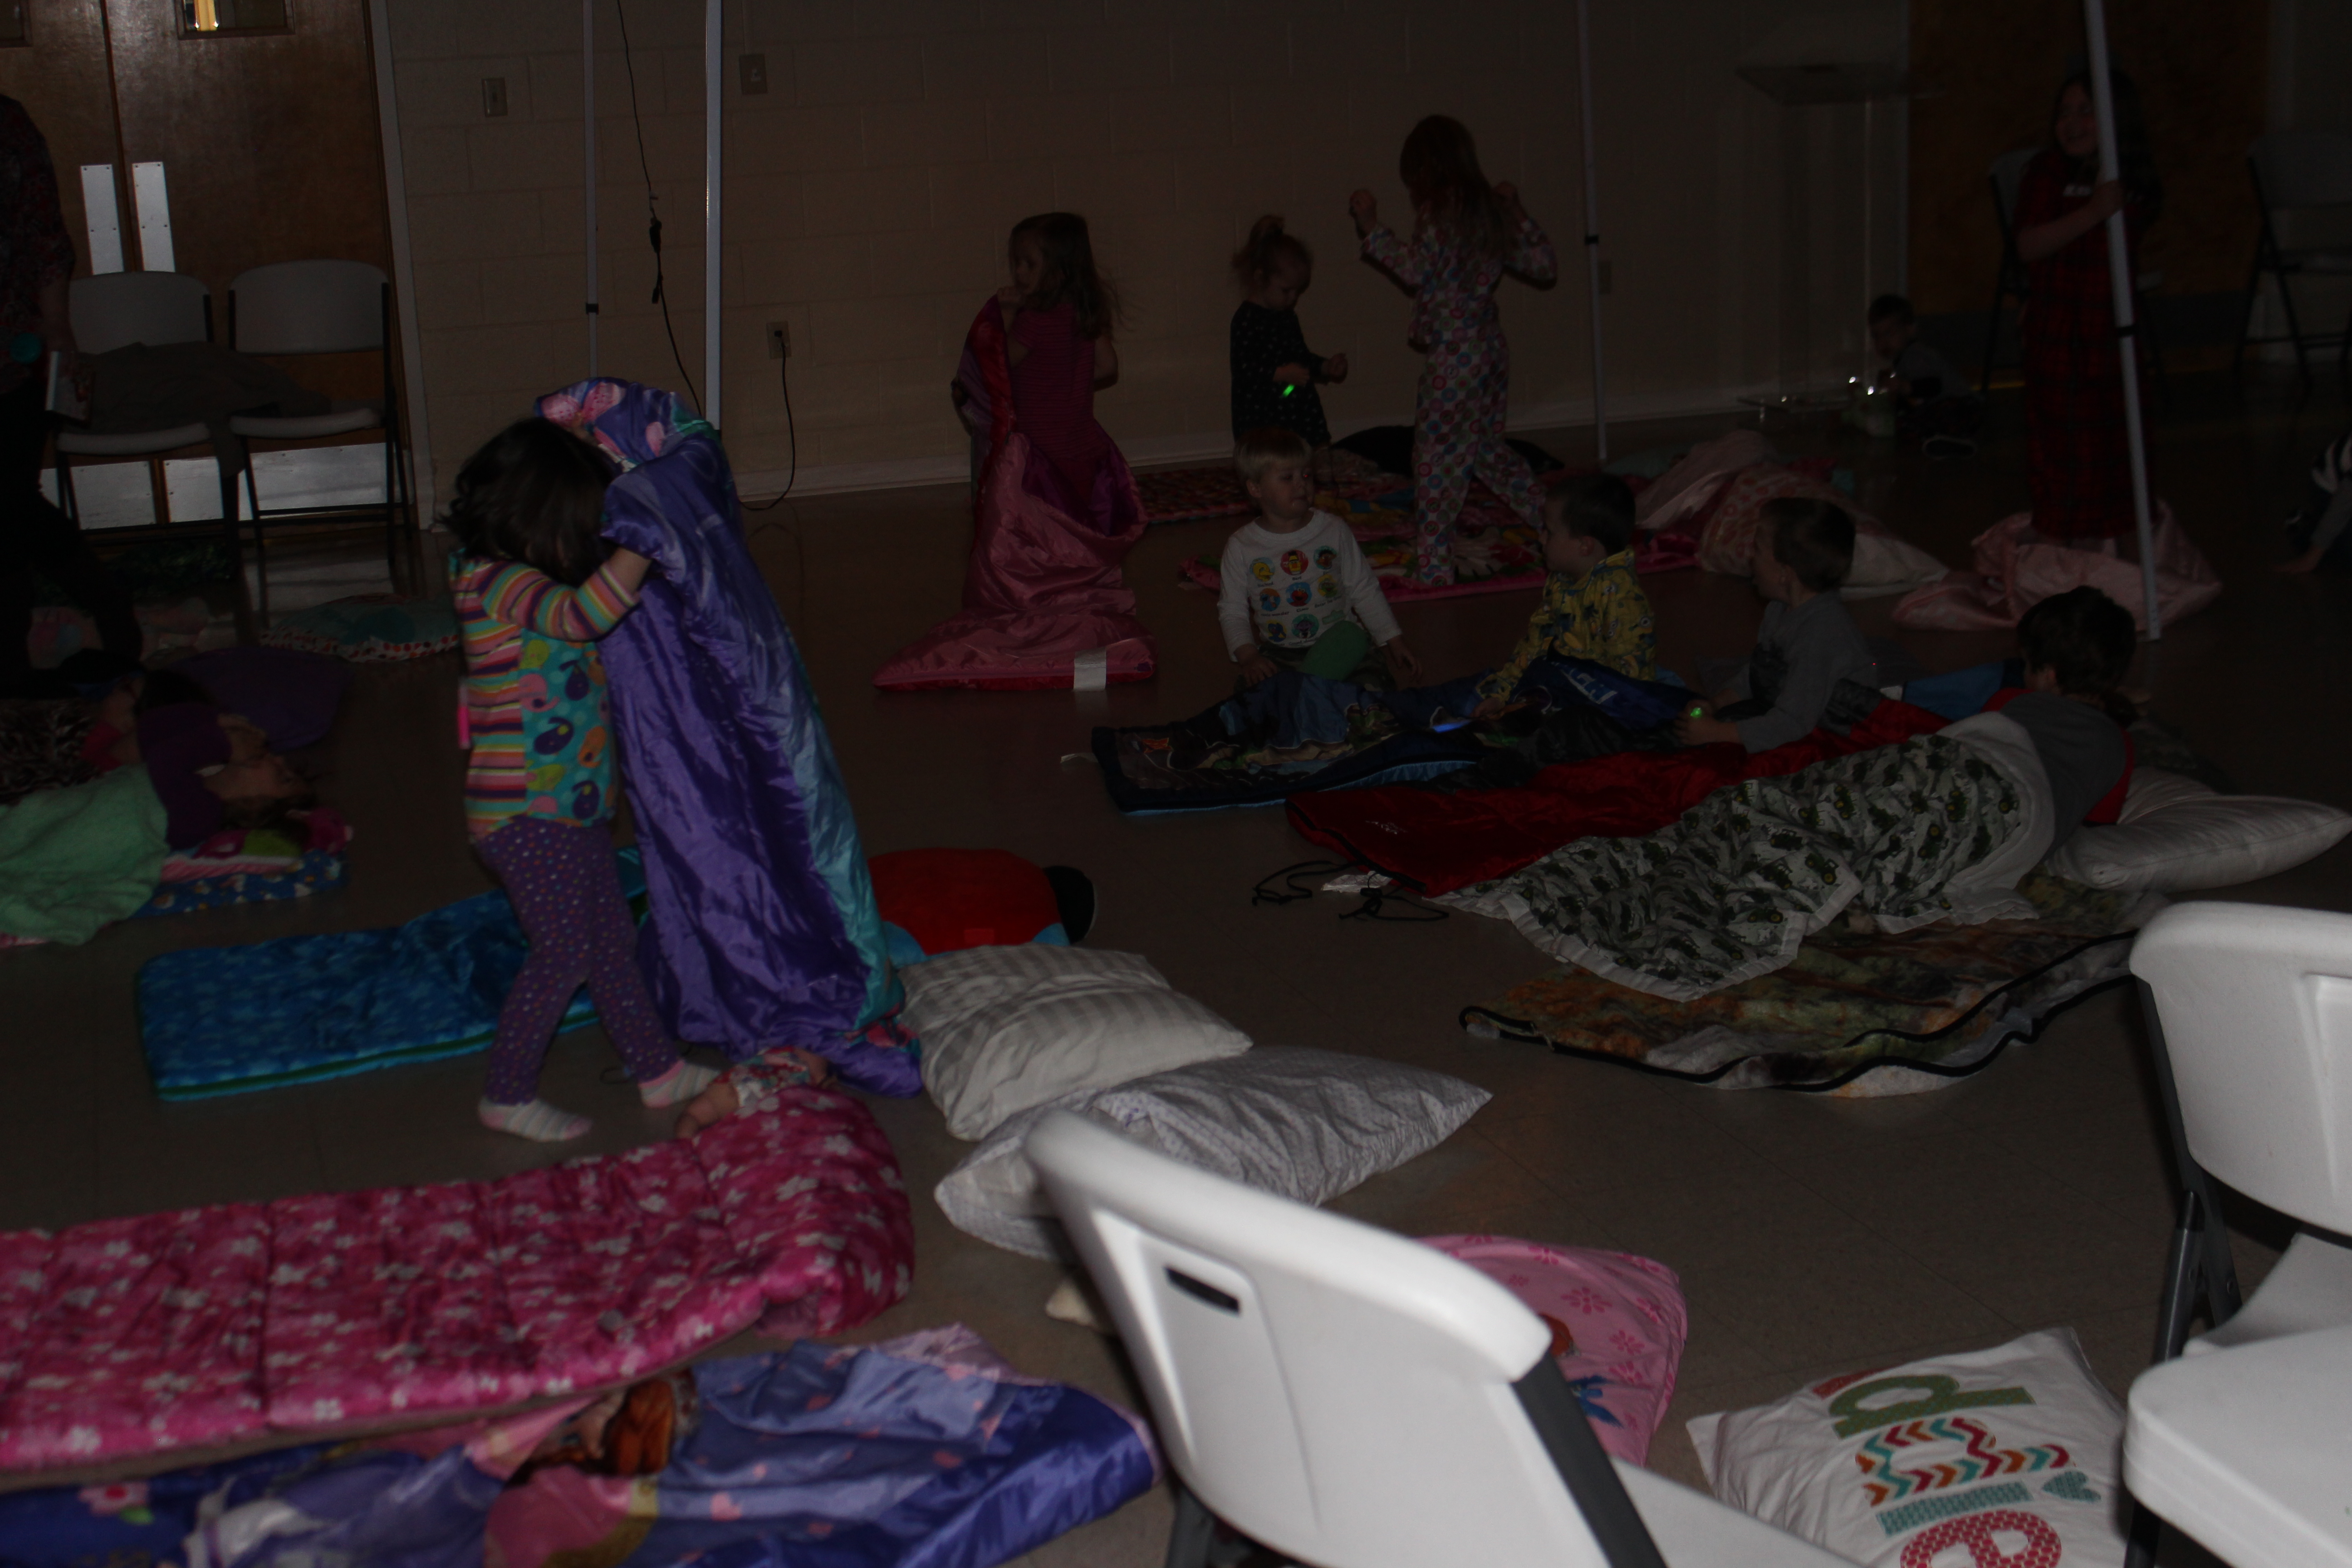 pictures of Lock-in 045